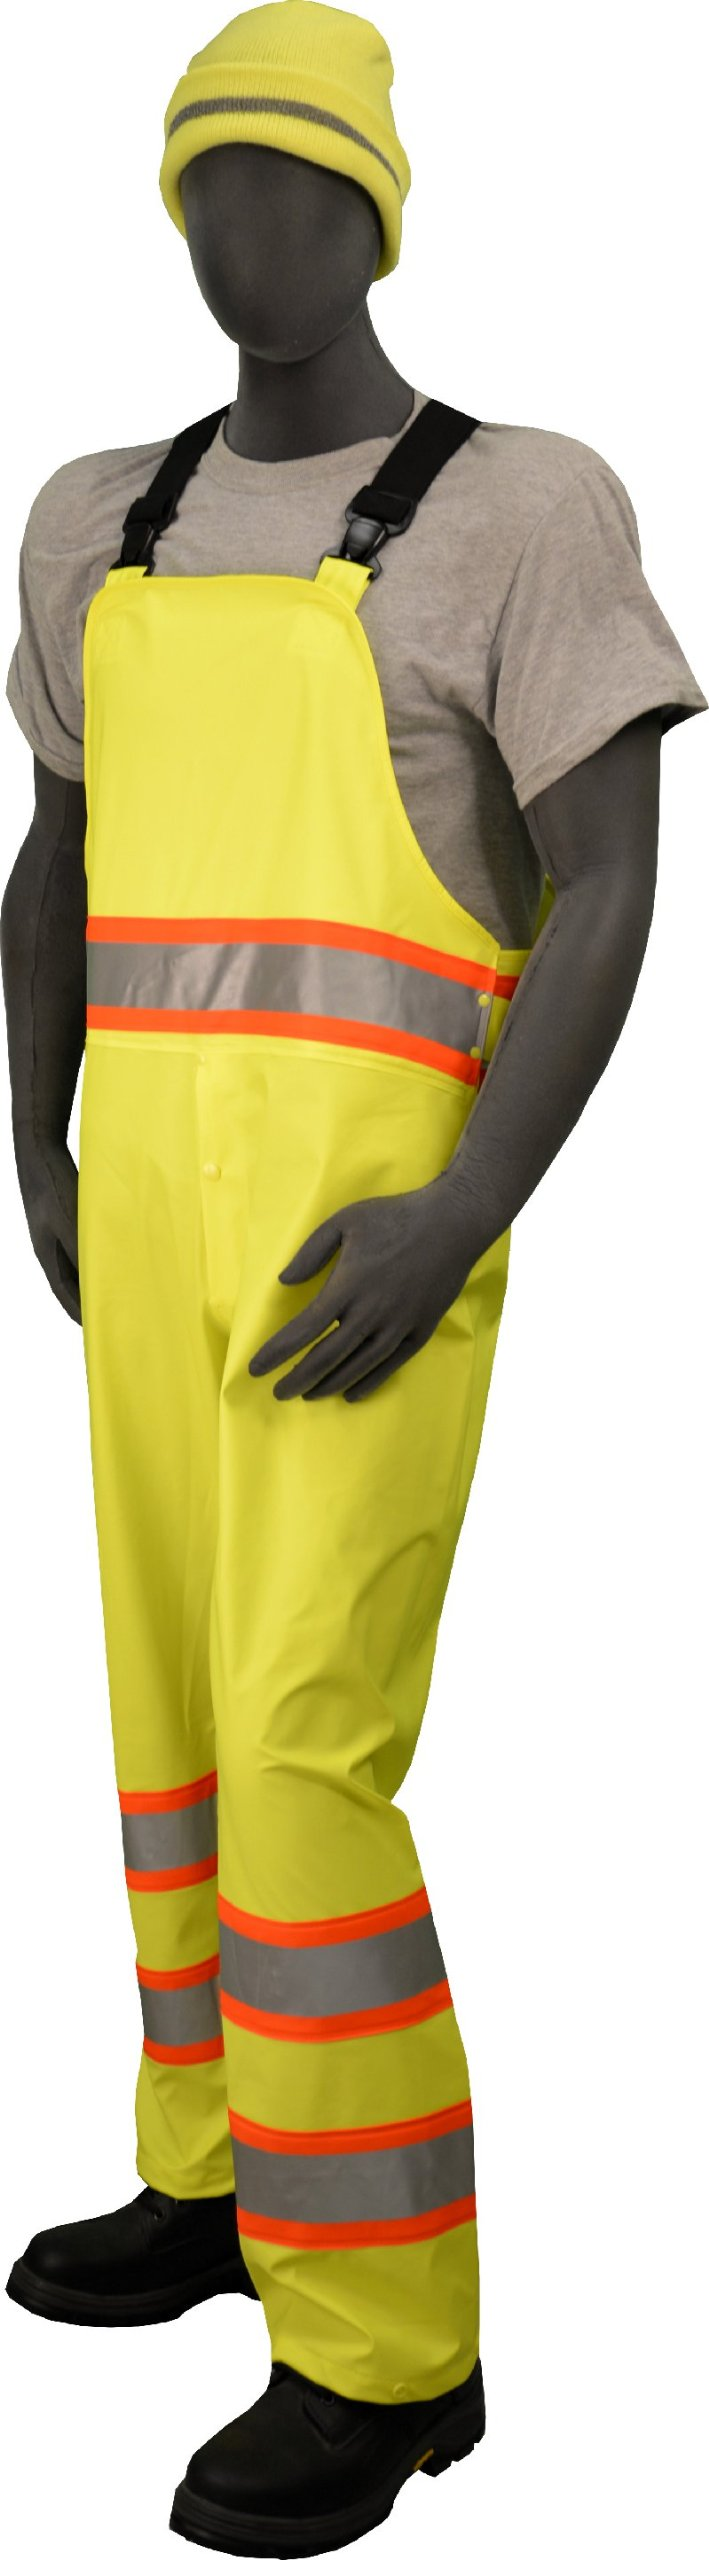 Majestic Glove 75-7353 Polyester High Visibility DOT Rain Bib with Elastic Suspenders, 2X-Large, Yellow